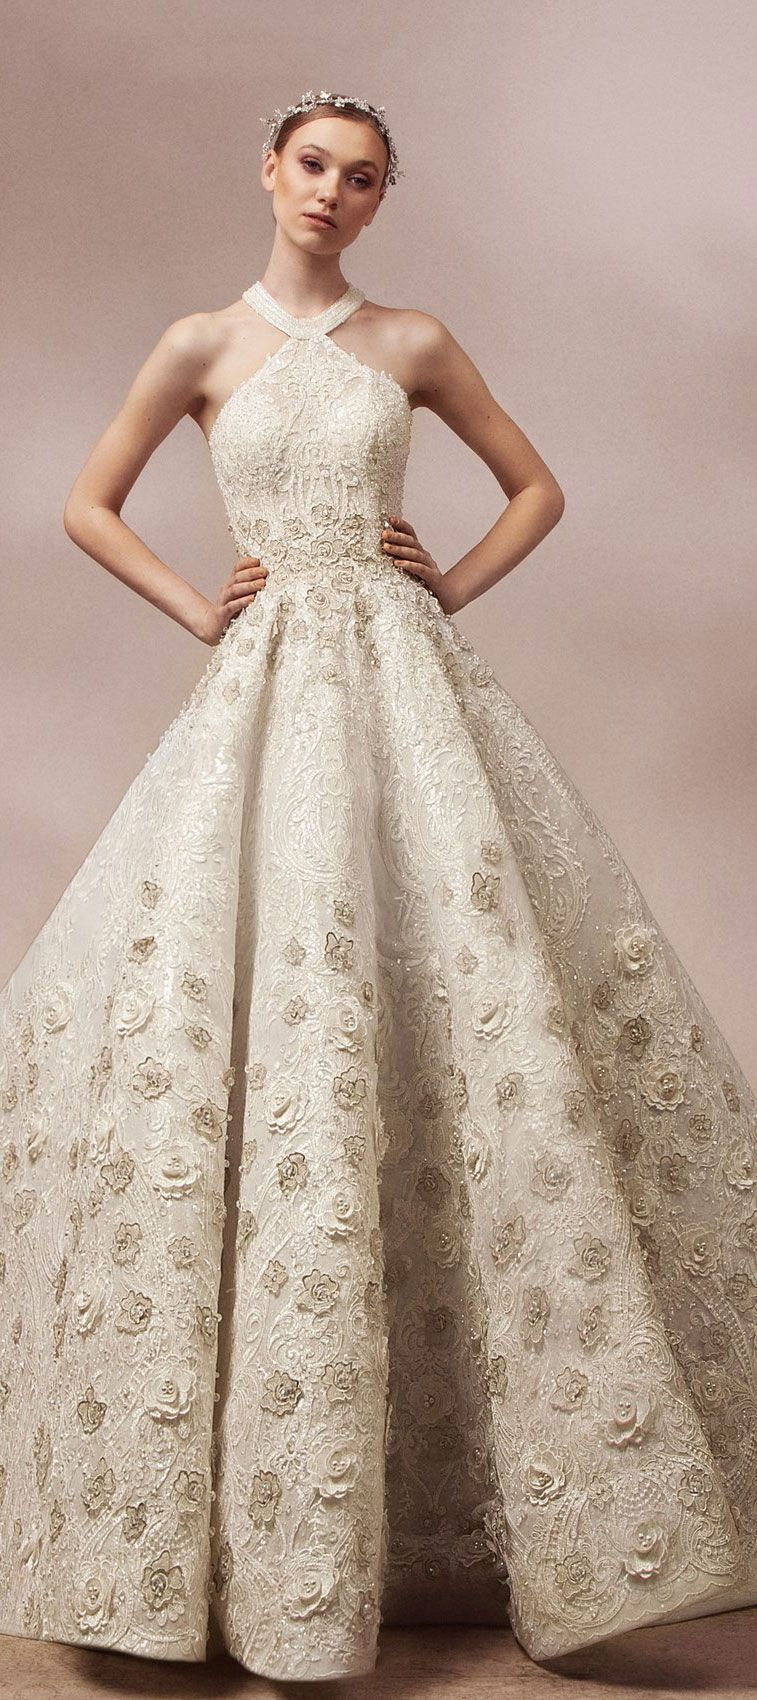 Naja saade couture wedding dresses ucgaeaud bridal collection